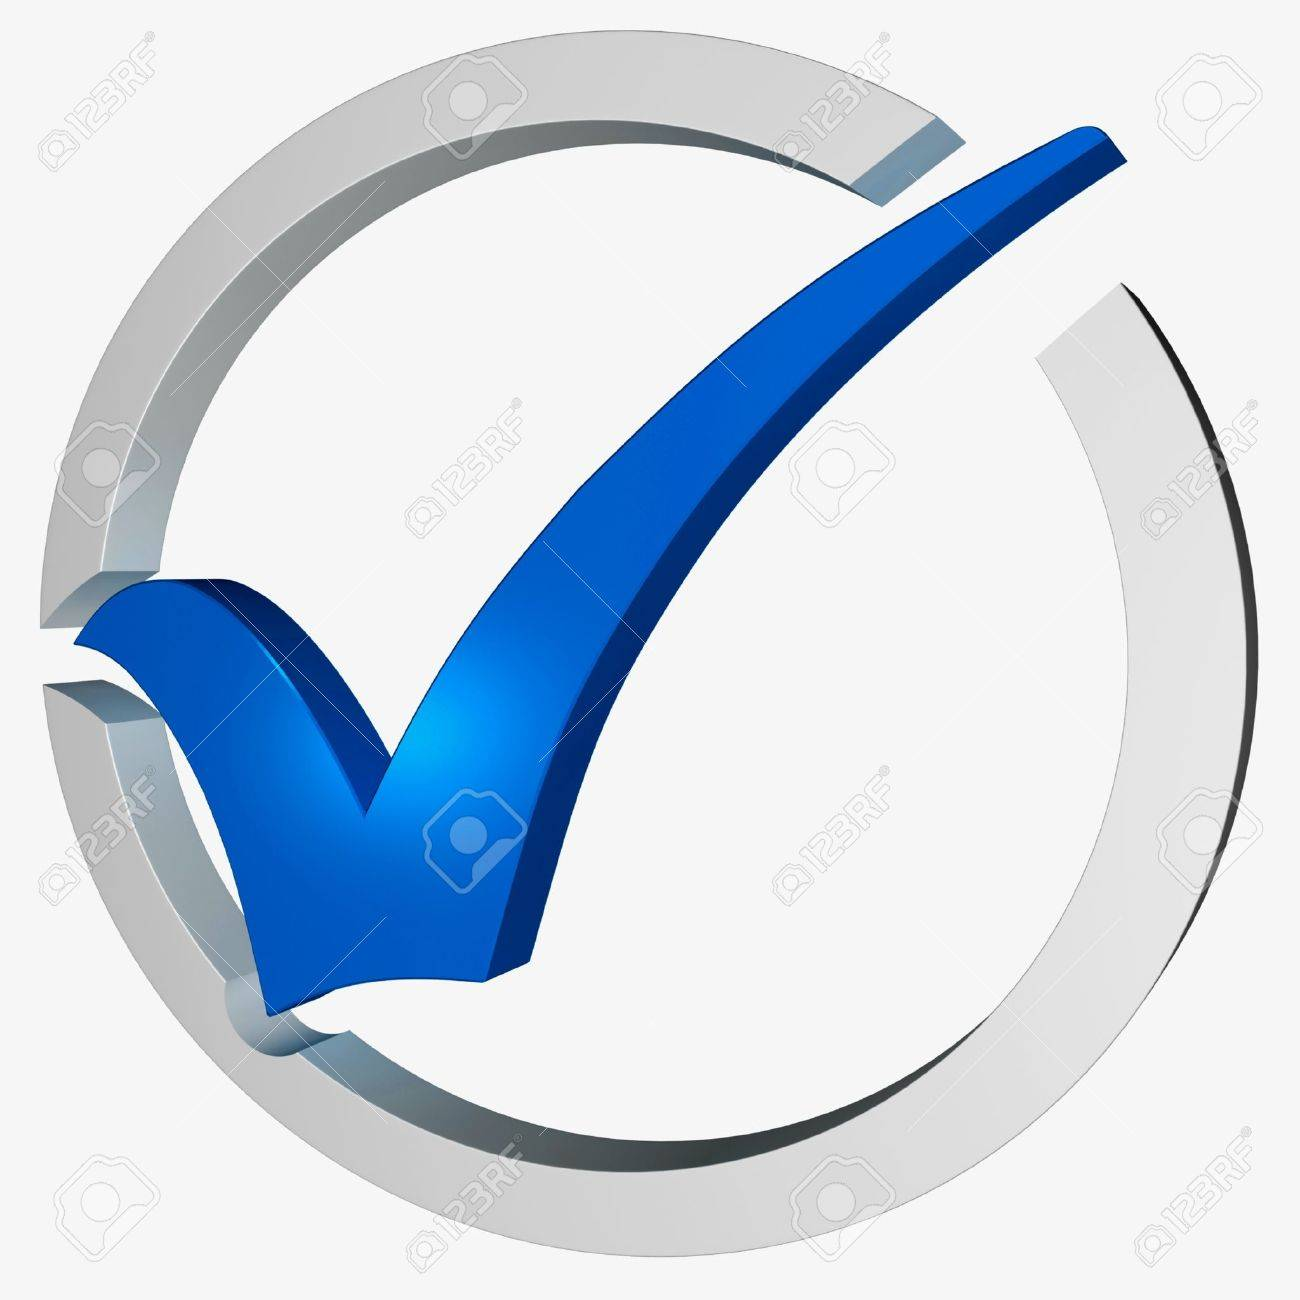 Blue Tick Circled Showing Checked Verified Excellence Guaranteed Stock Photo - 16517868